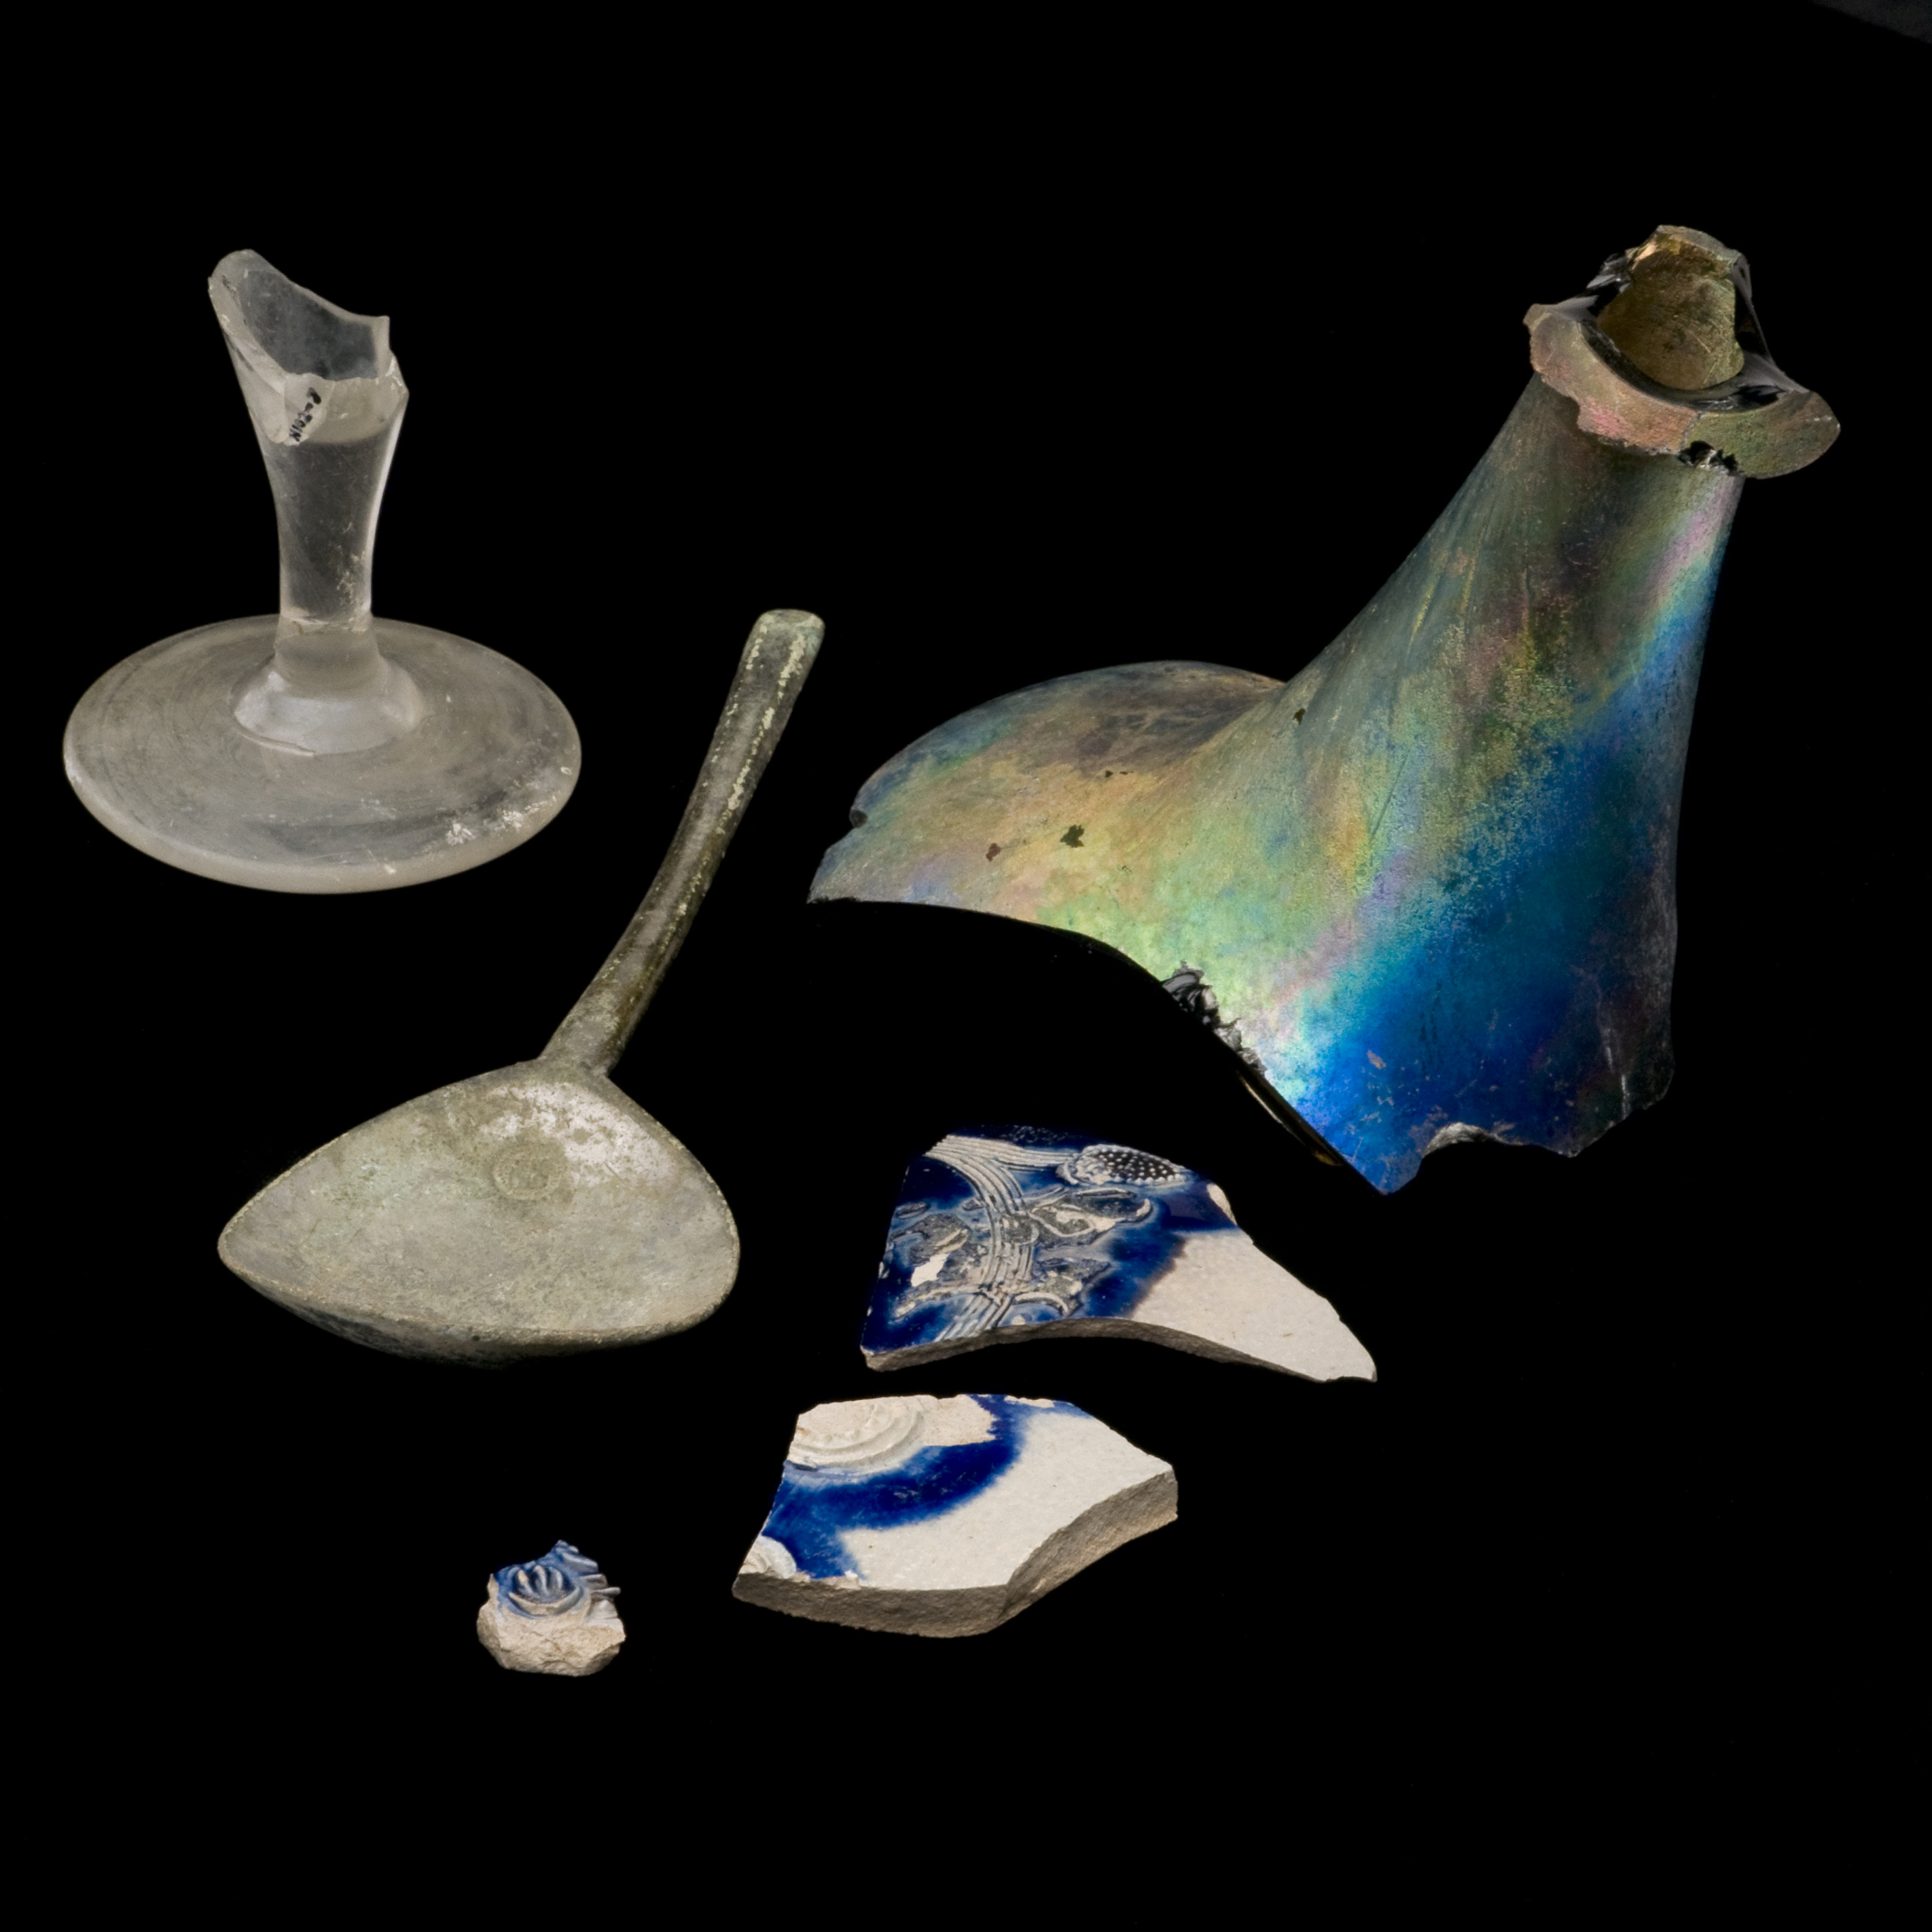 Selection of artifacts excavated from Harvard Yard